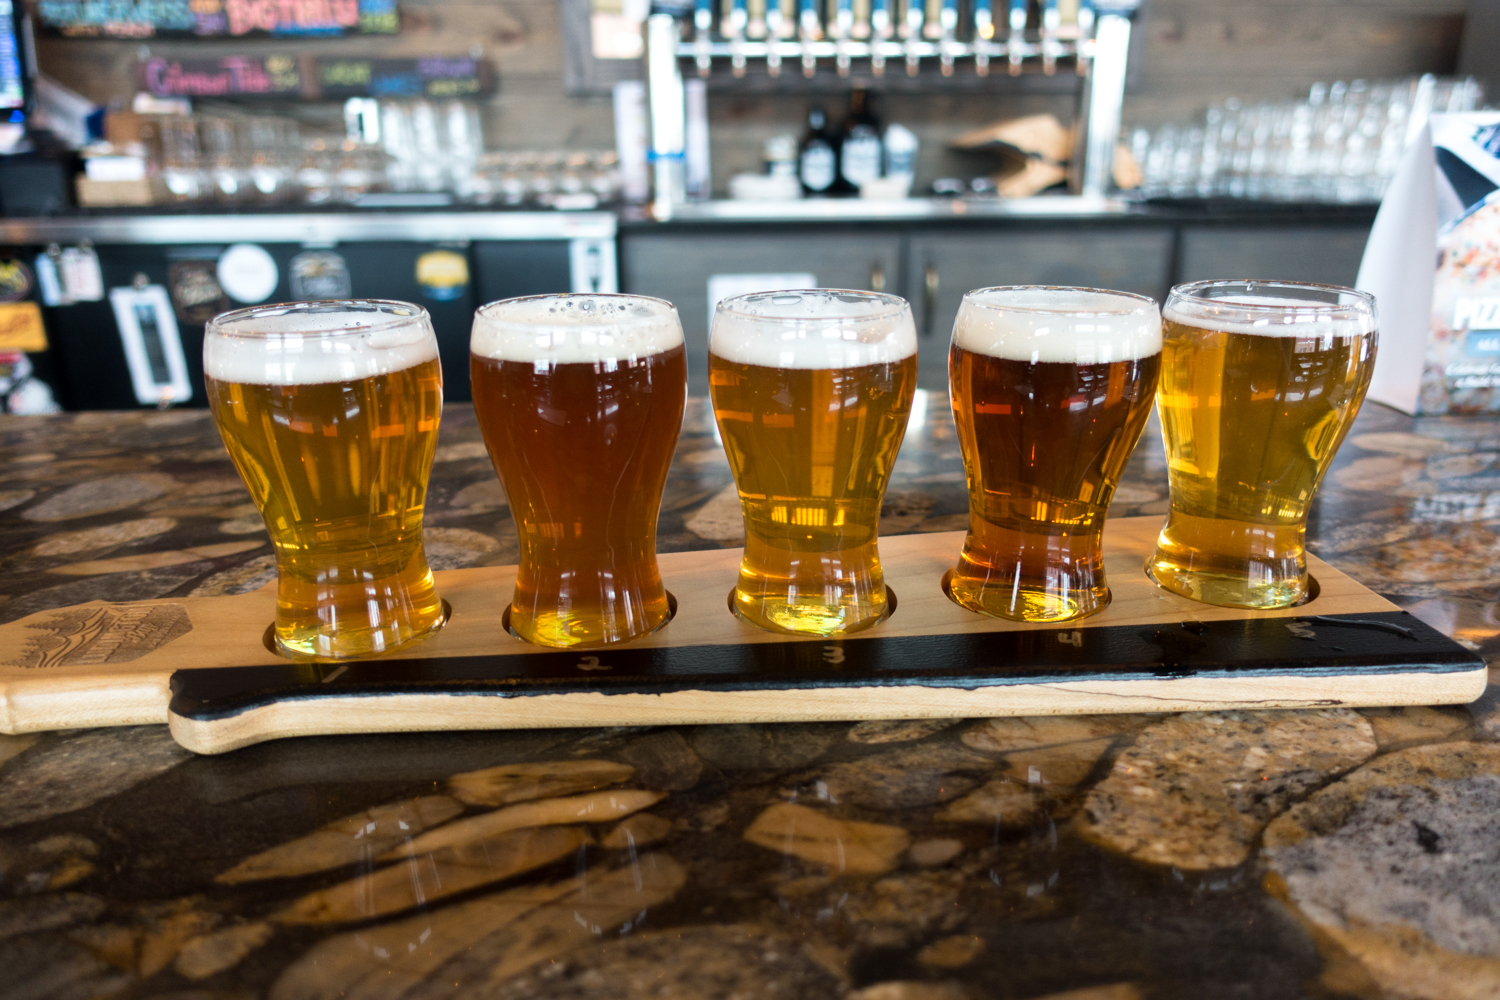 Planning a trip to Ludington, Michigan? Check out these 3 Must-Visit Craft Breweries in Ludington. It's the perfect destination for craft beer enthusiasts.#craftbeer #michigan